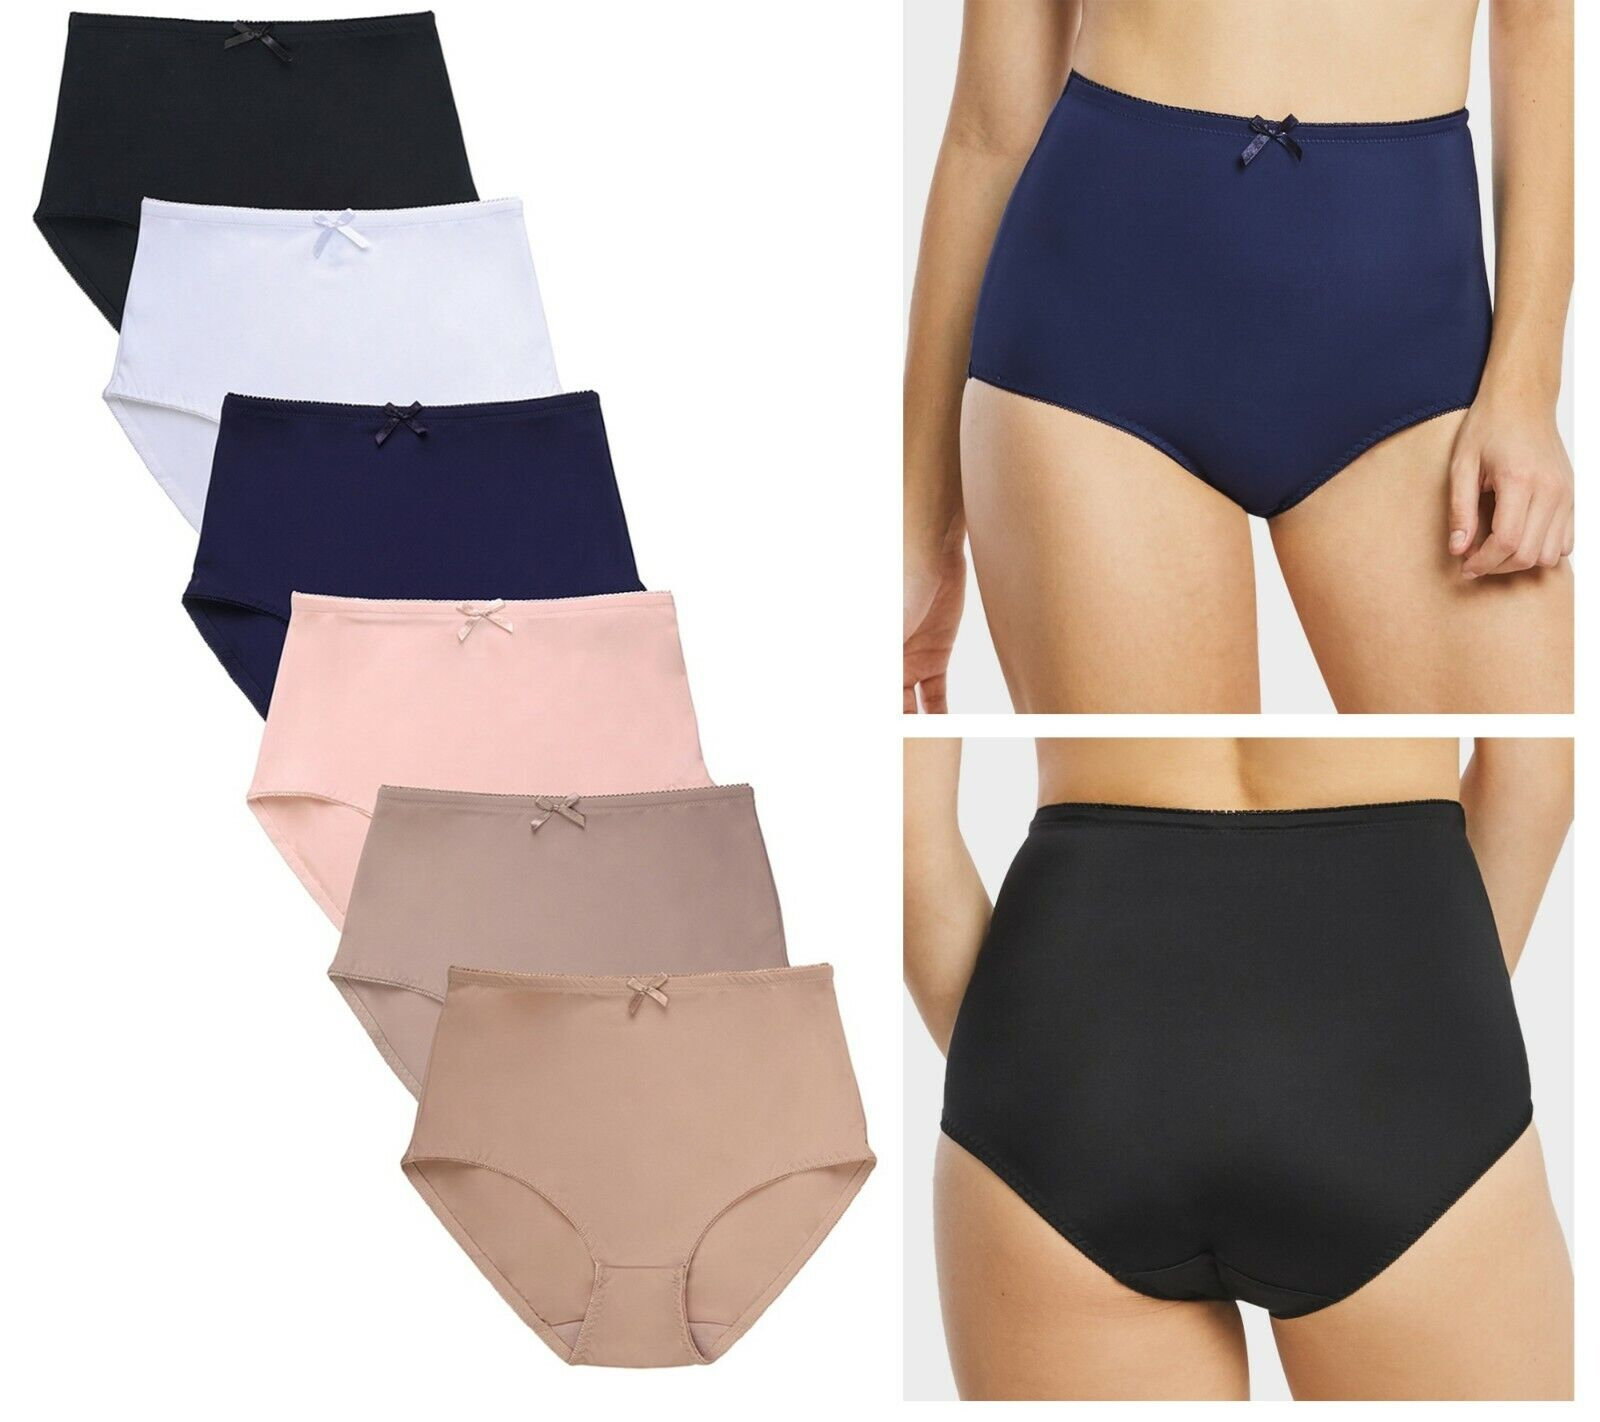 6 Women L XL 2X 3X Plus Size High Waist Tummy Slim Control Underwear Brief Panty Clothing, Shoes & Accessories